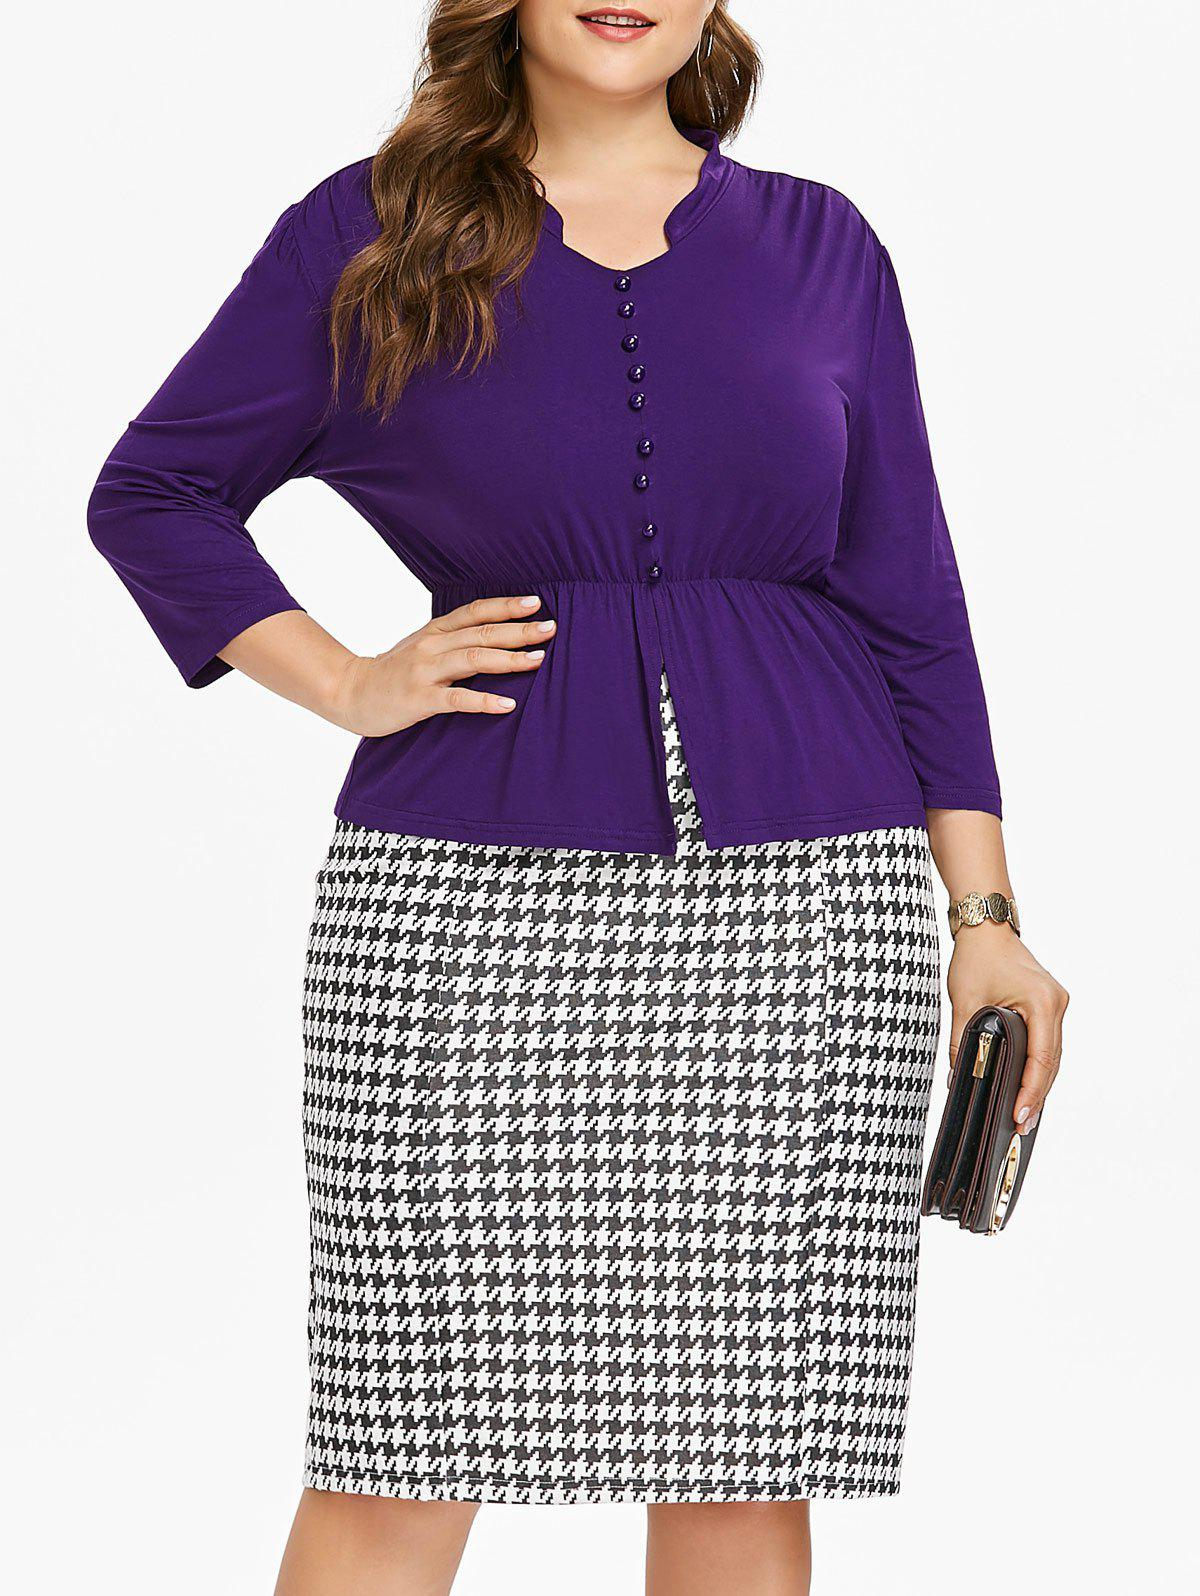 Fancy Button Insert Top and Houndstooth Print Plus Size Skirt